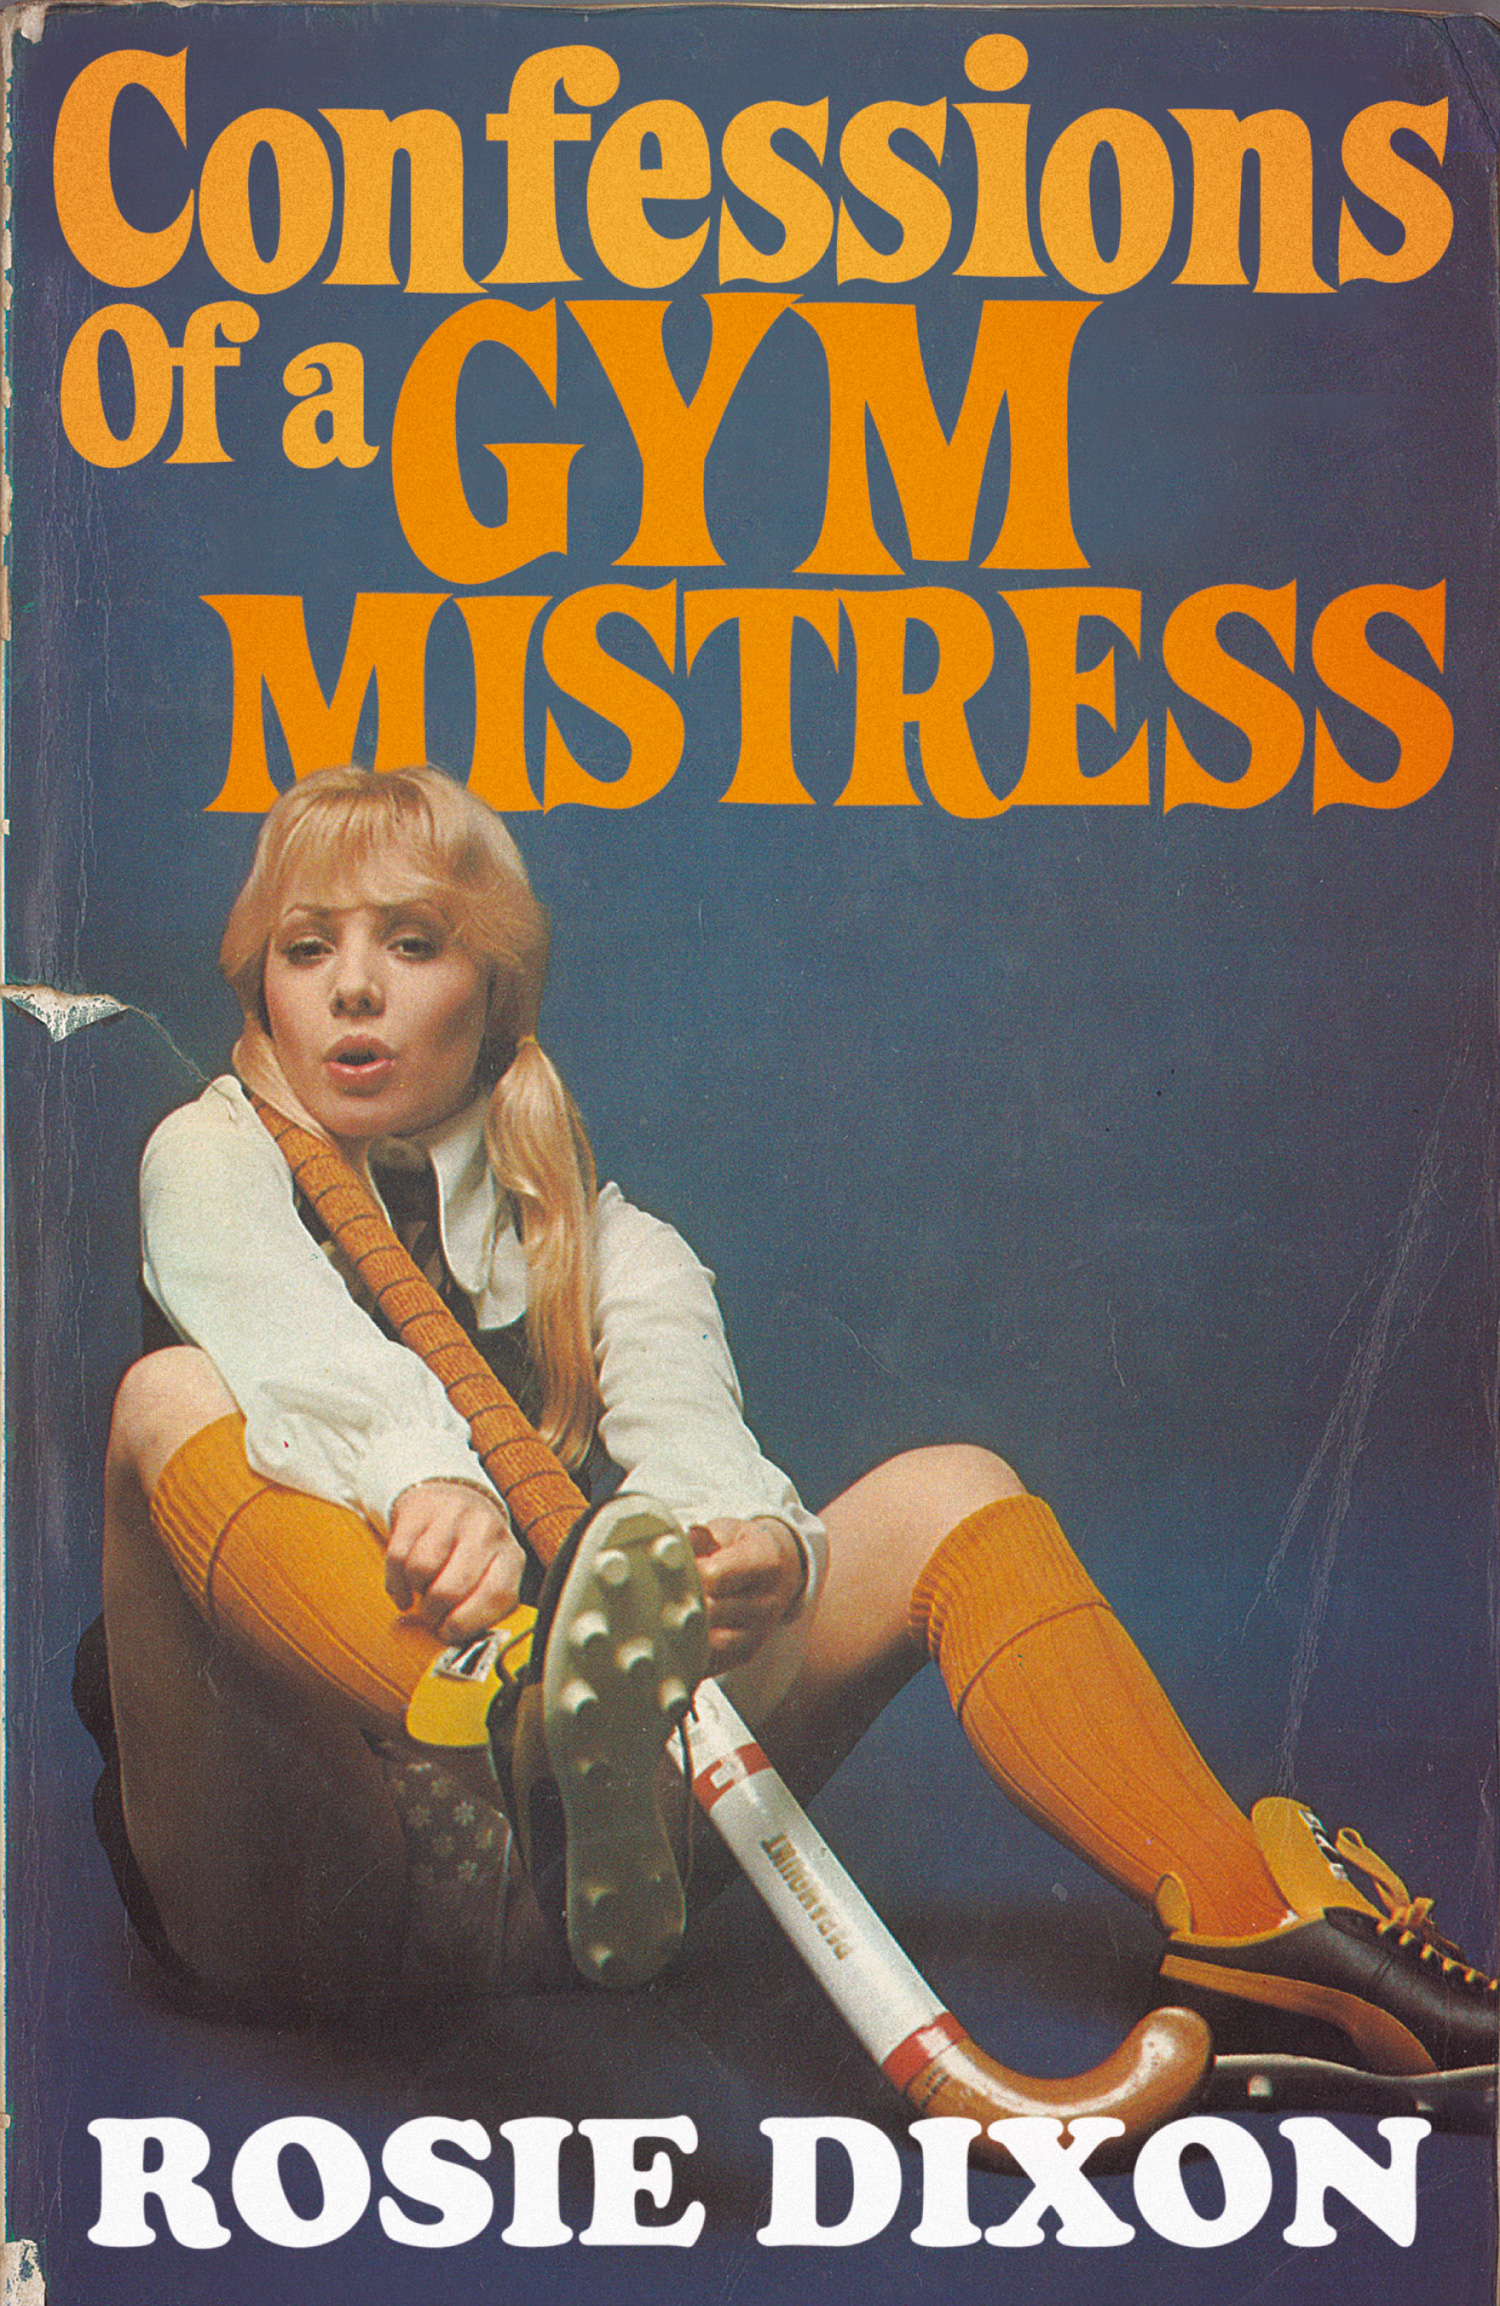 Confessions of a Gym Mistress (Rosie Dixon, Book 2)